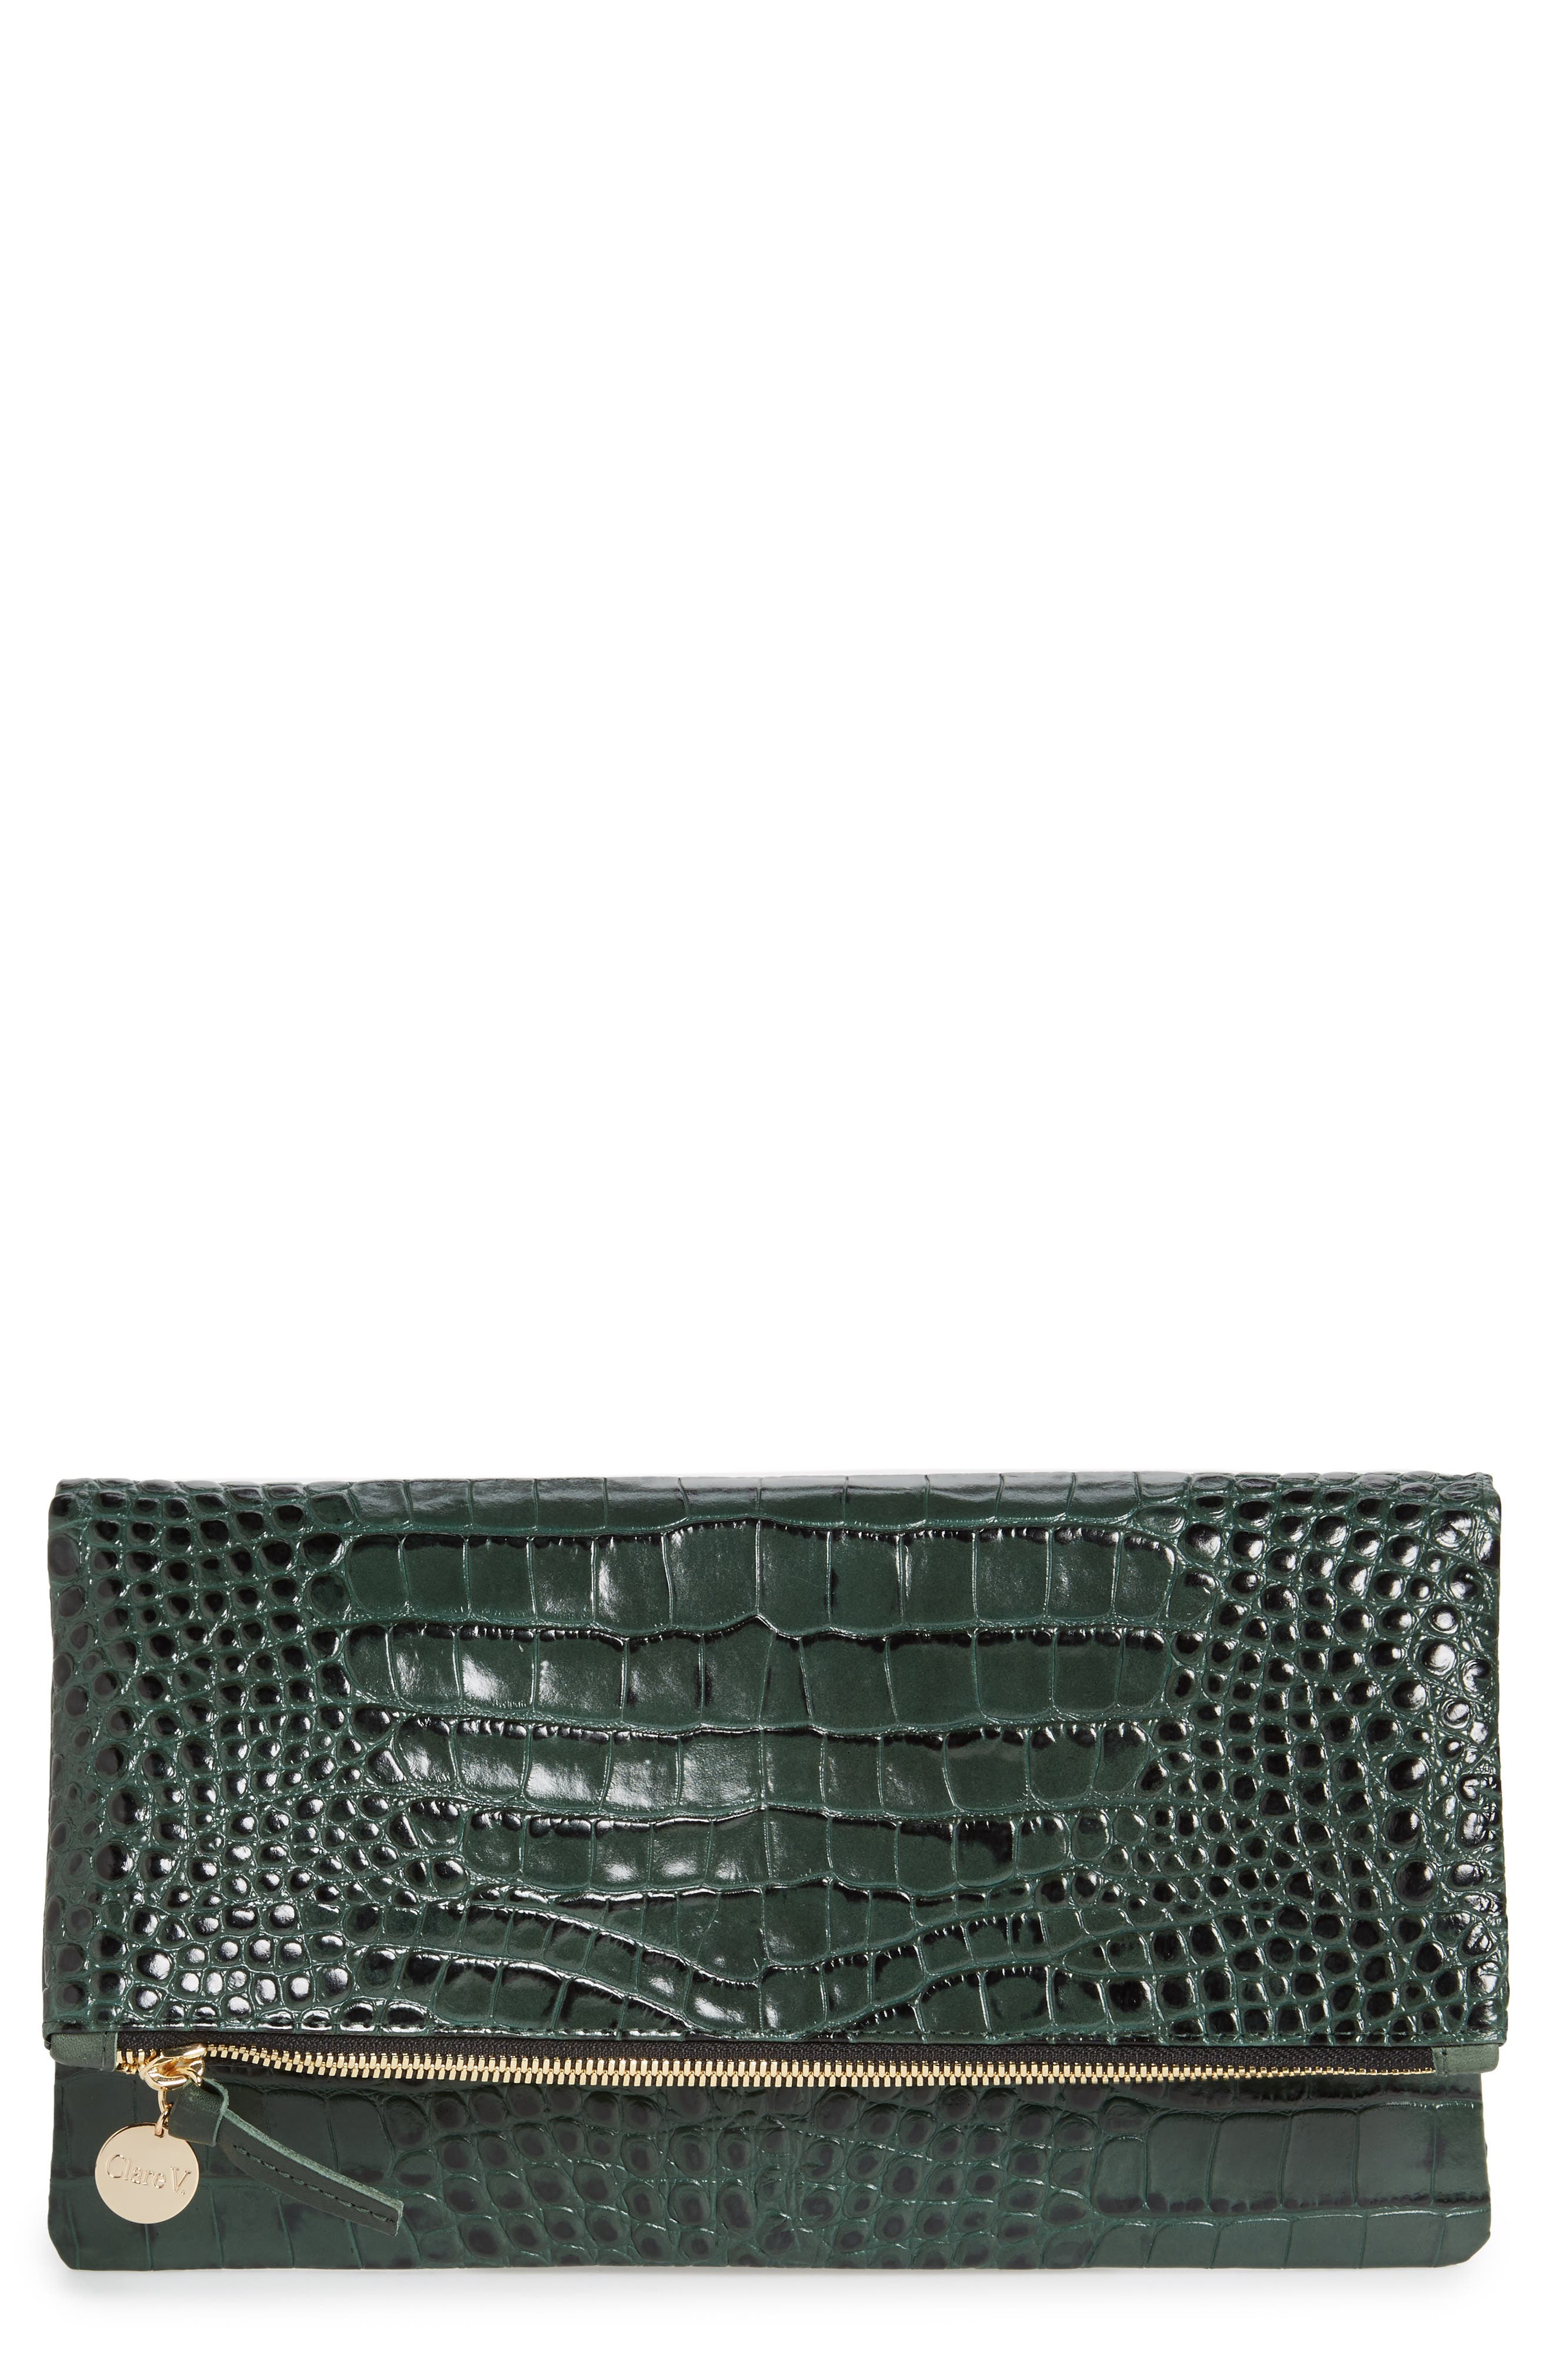 Croc Embossed Leather Foldover Clutch,                             Main thumbnail 1, color,                             300